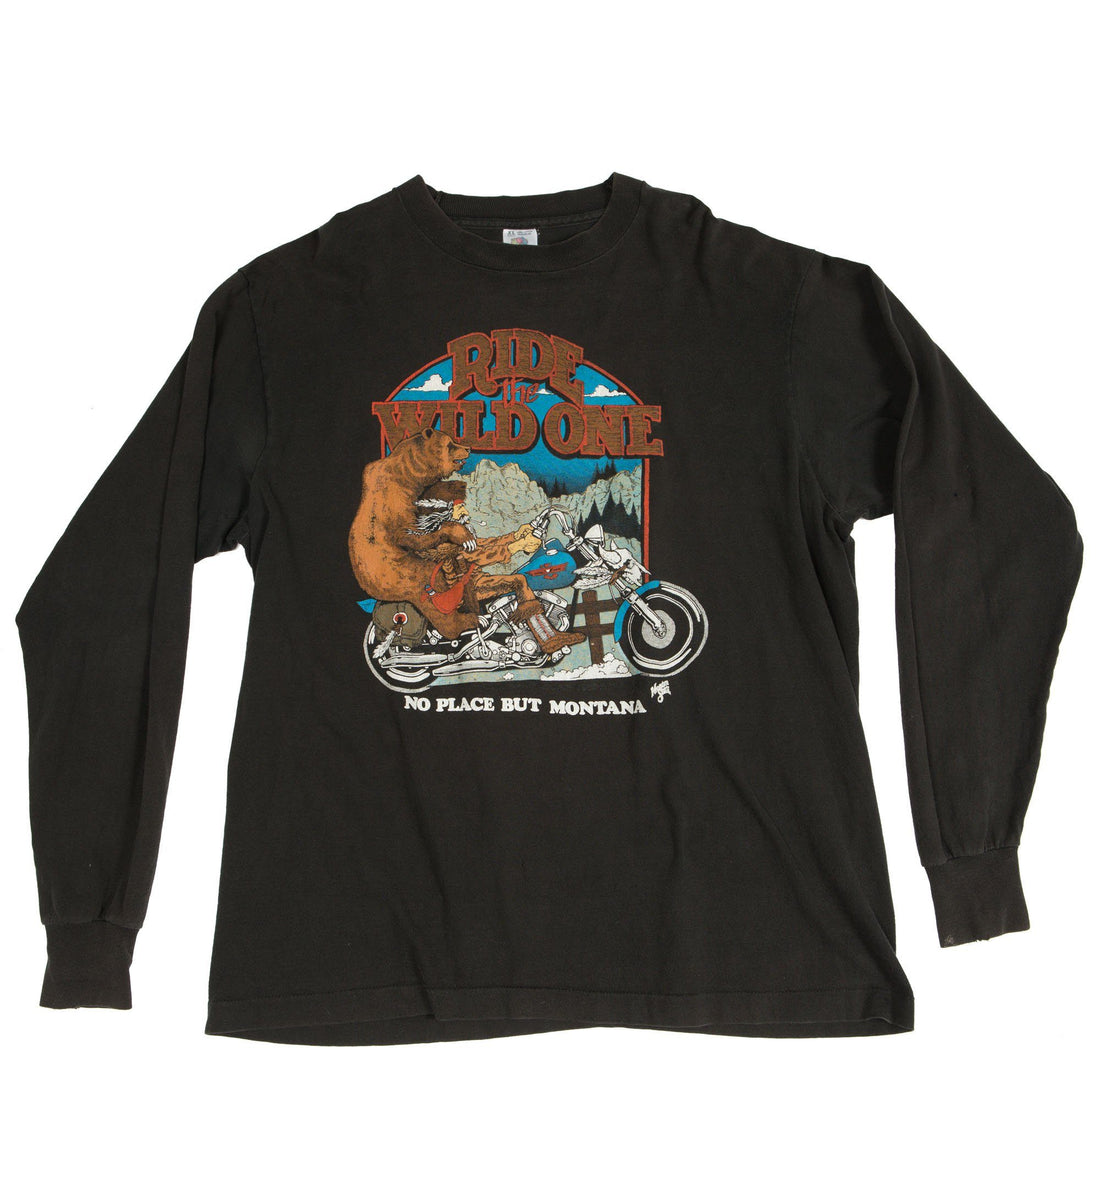 Vintage 80's Wild One Long Sleeve Shirt - Vintage - Iron and Resin